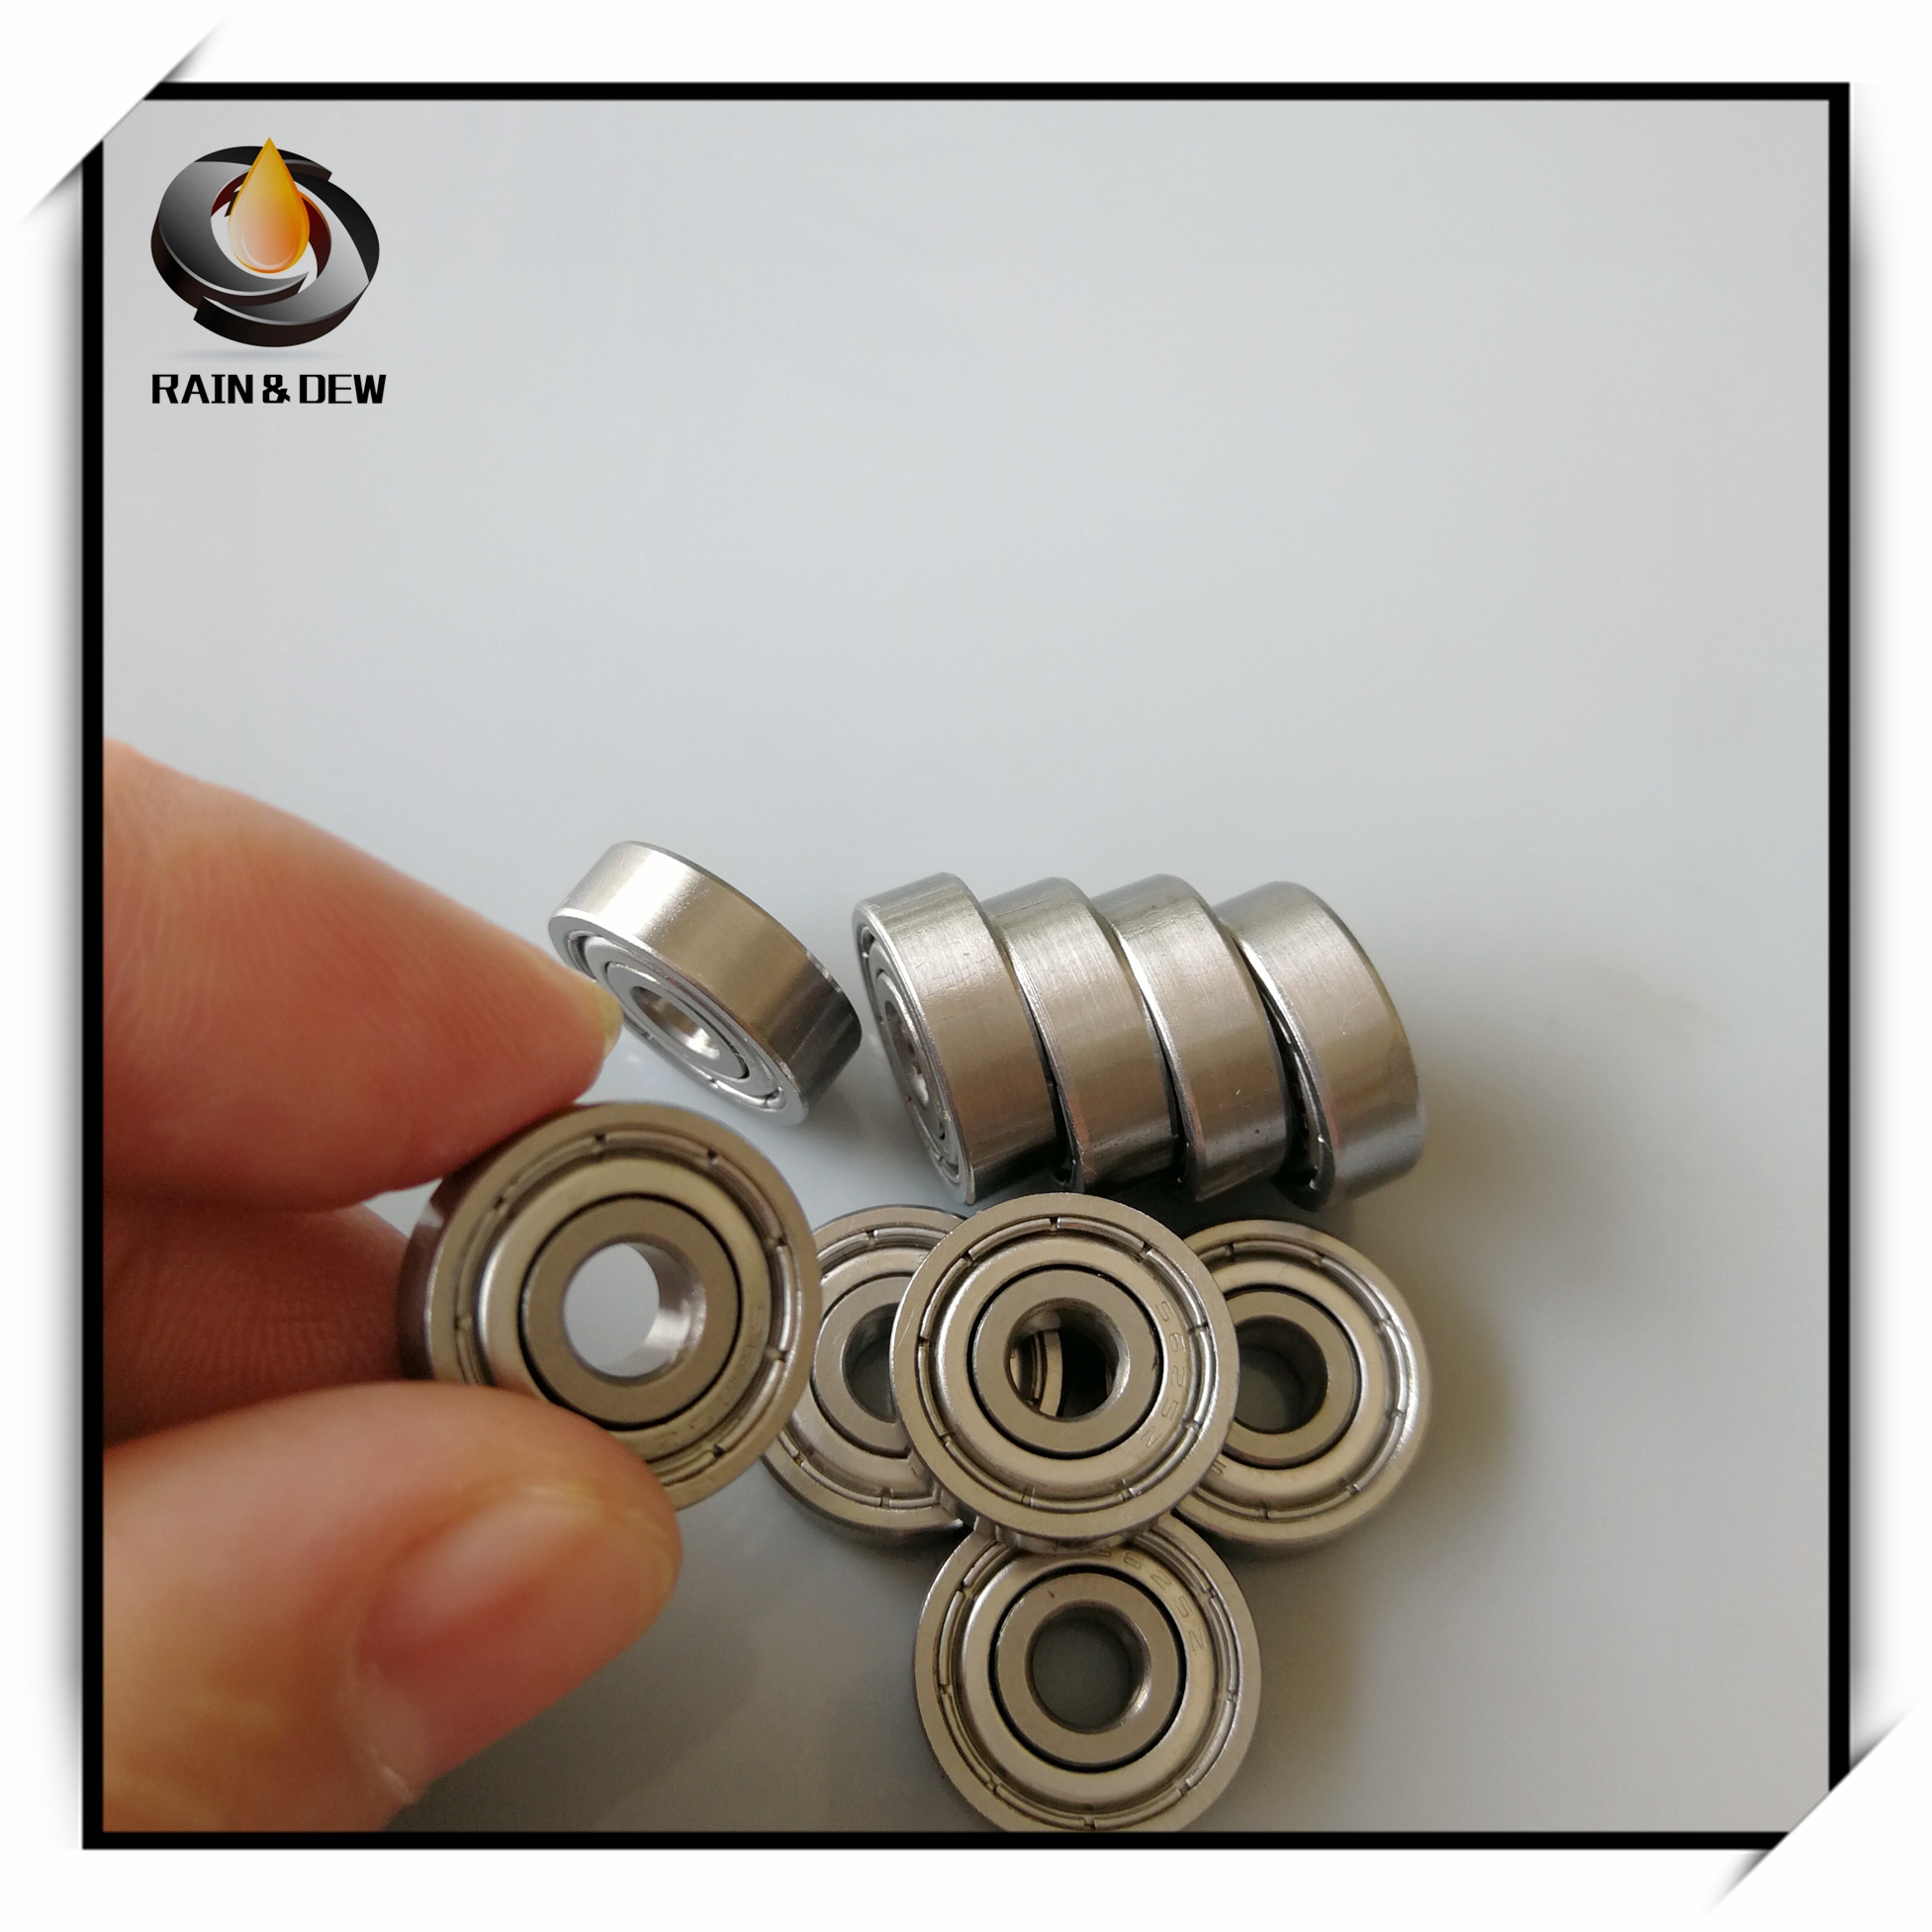 10Pcs S625ZZ Stainless Steel <font><b>Bearing</b></font> <font><b>5*16*5</b></font> mm ABEC-7 S625Z S625 Z ZZ Ball <font><b>Bearings</b></font> 3D parts image